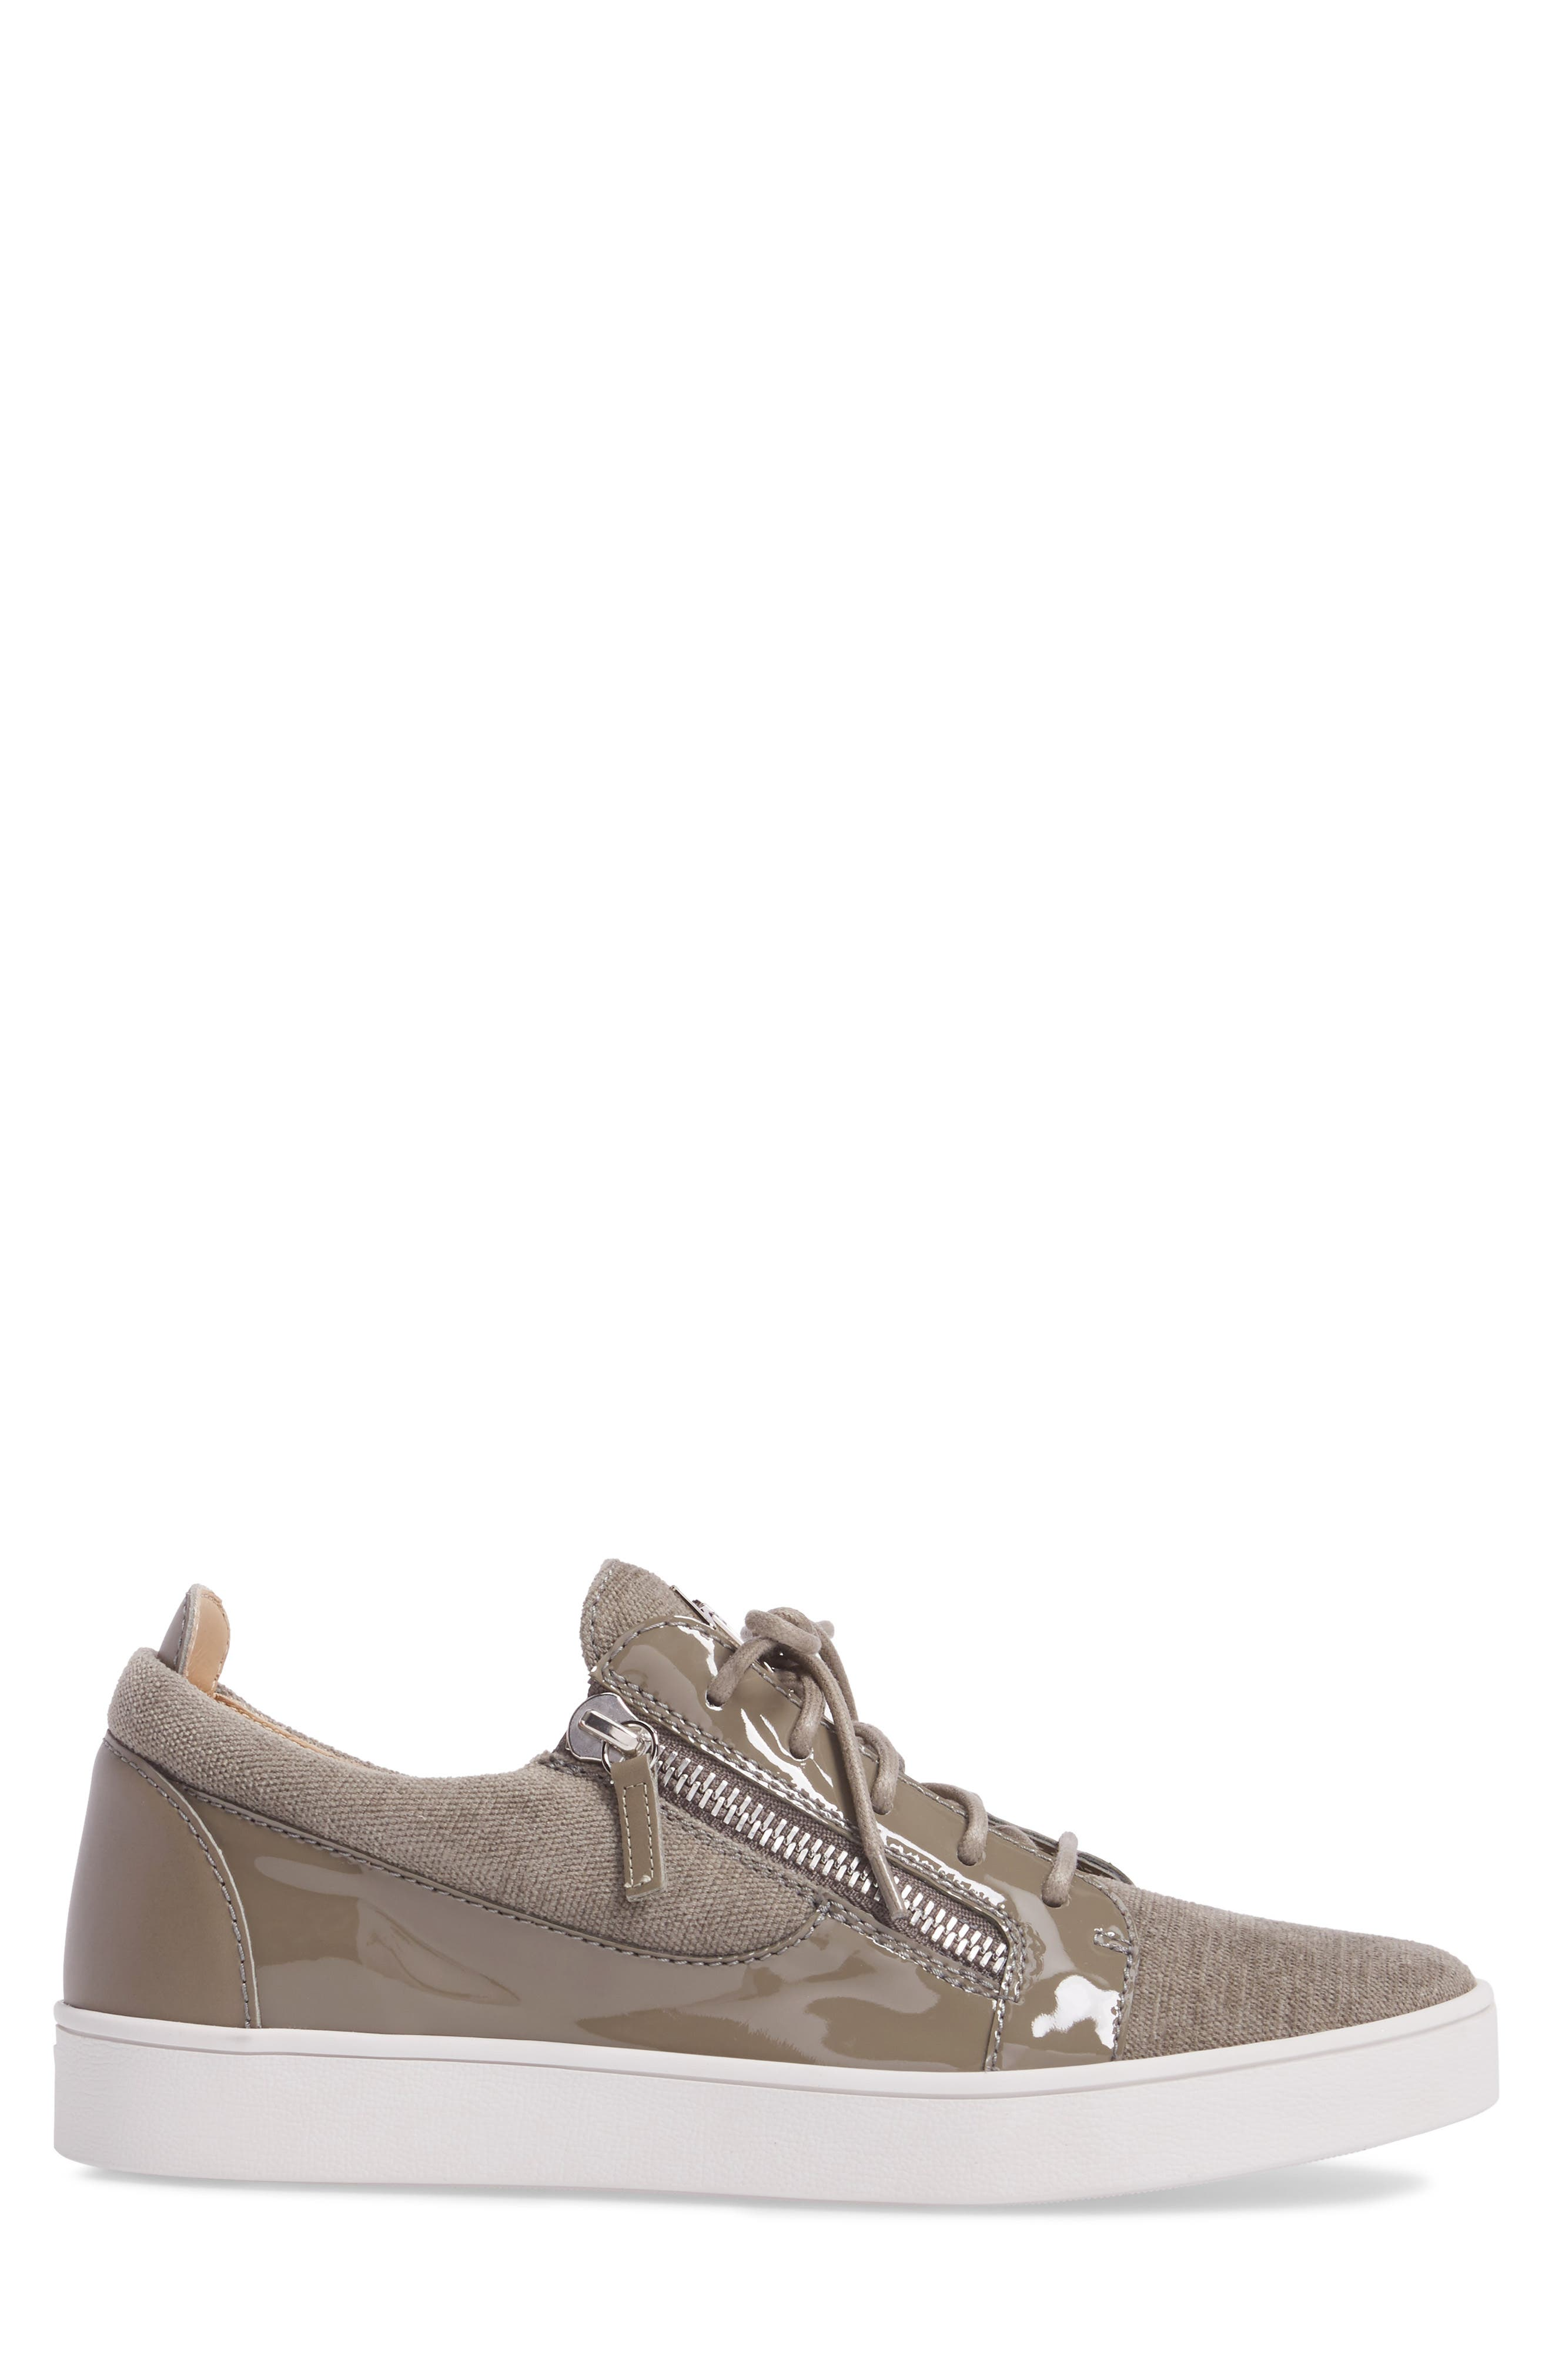 Low-Top Sneaker,                             Alternate thumbnail 3, color,                             Pietra